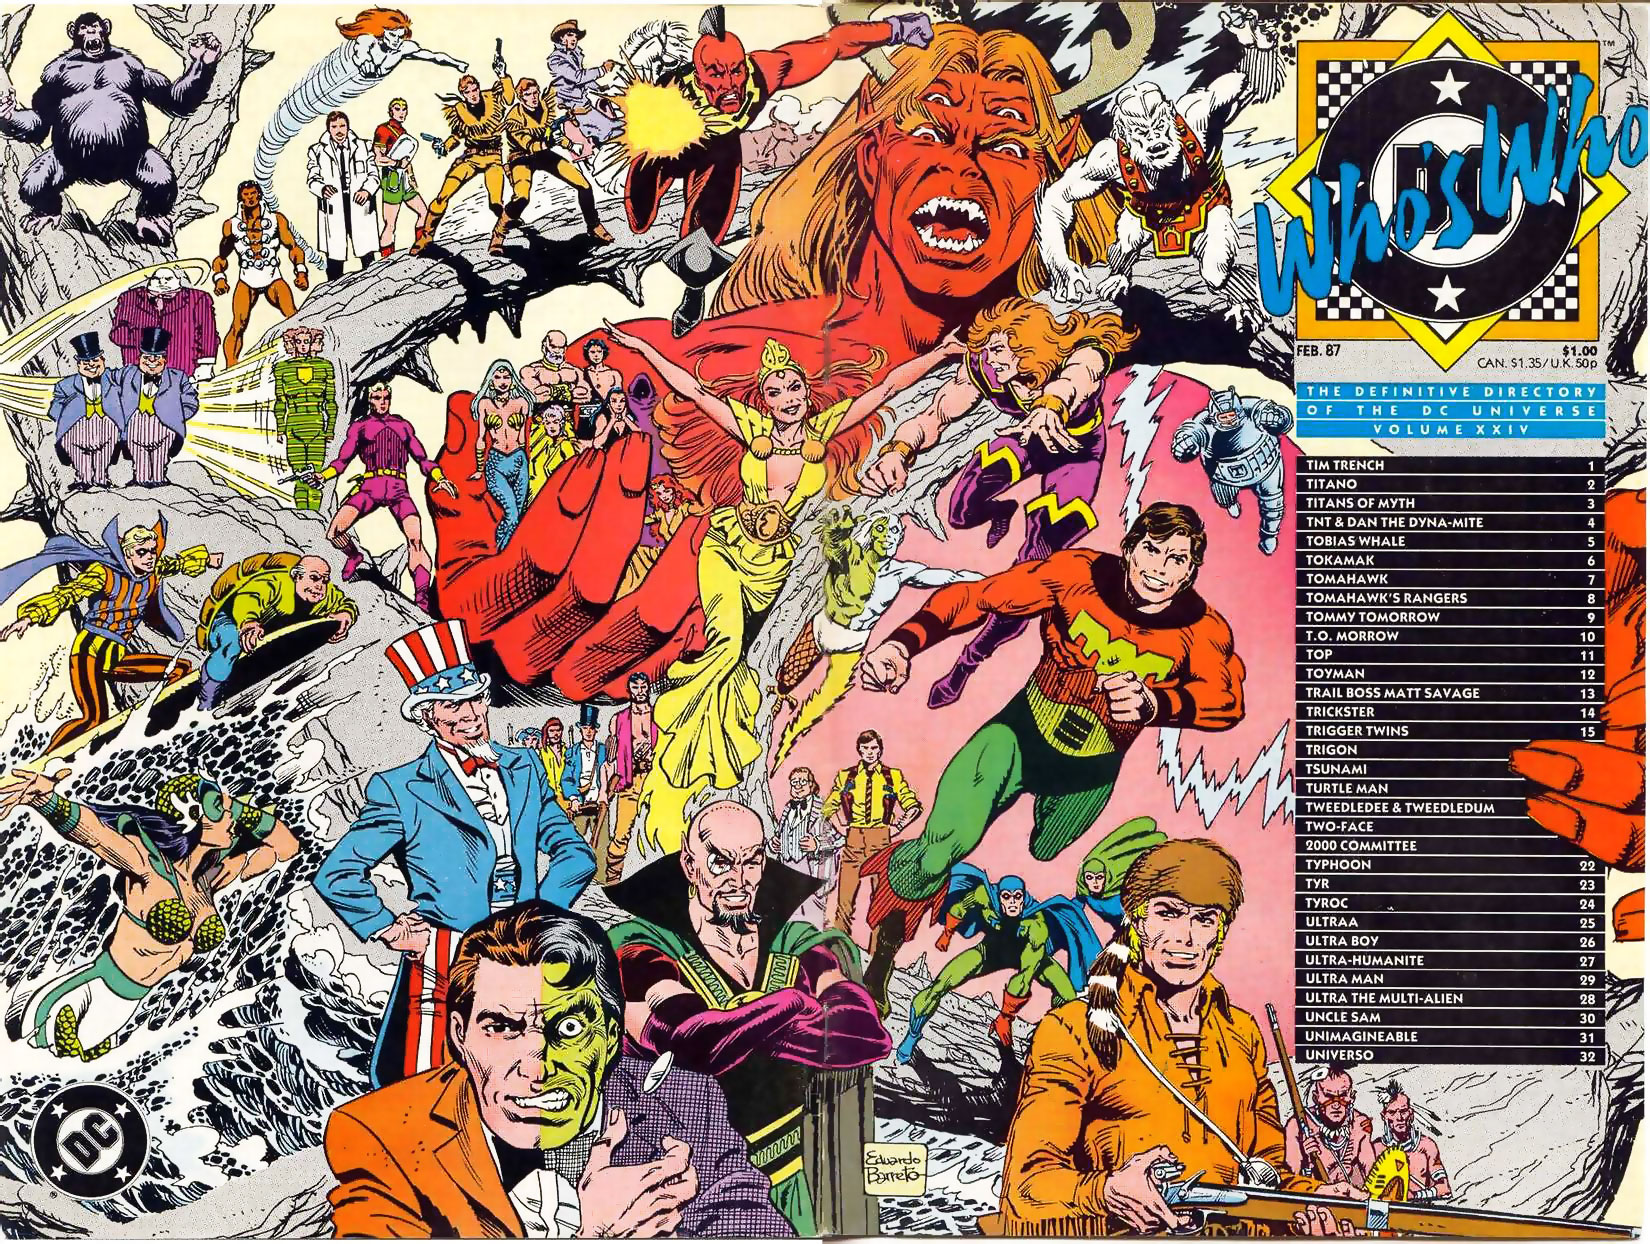 Who's Who the Definitive Directory of the DC Universe #24 cover by Eduardo Barreto